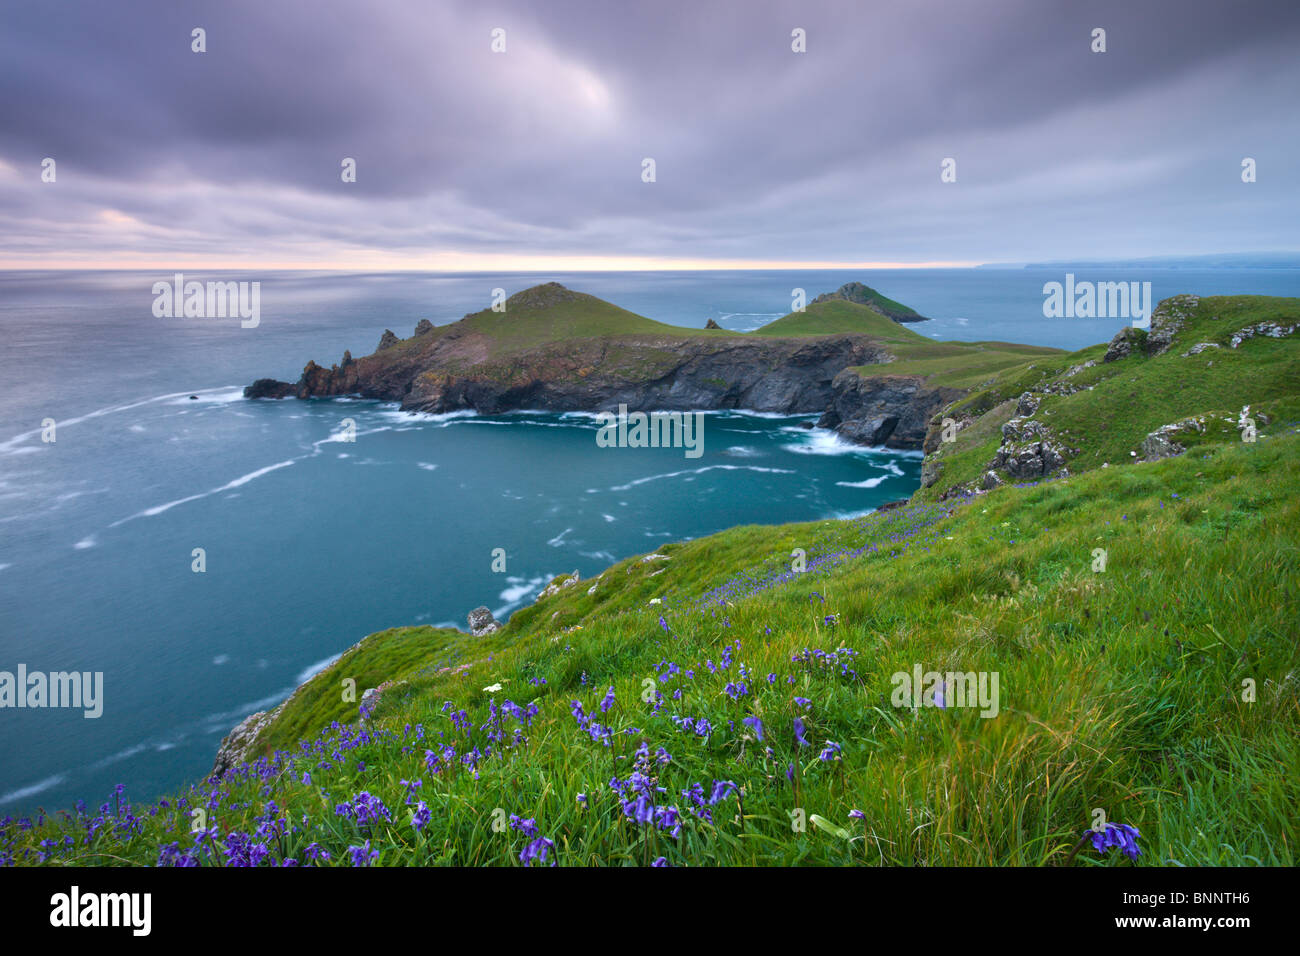 Bluebells growing on the Cornish clifftops looking towards The Rumps Peninsula, Cornwall, England. Spring (May) - Stock Image